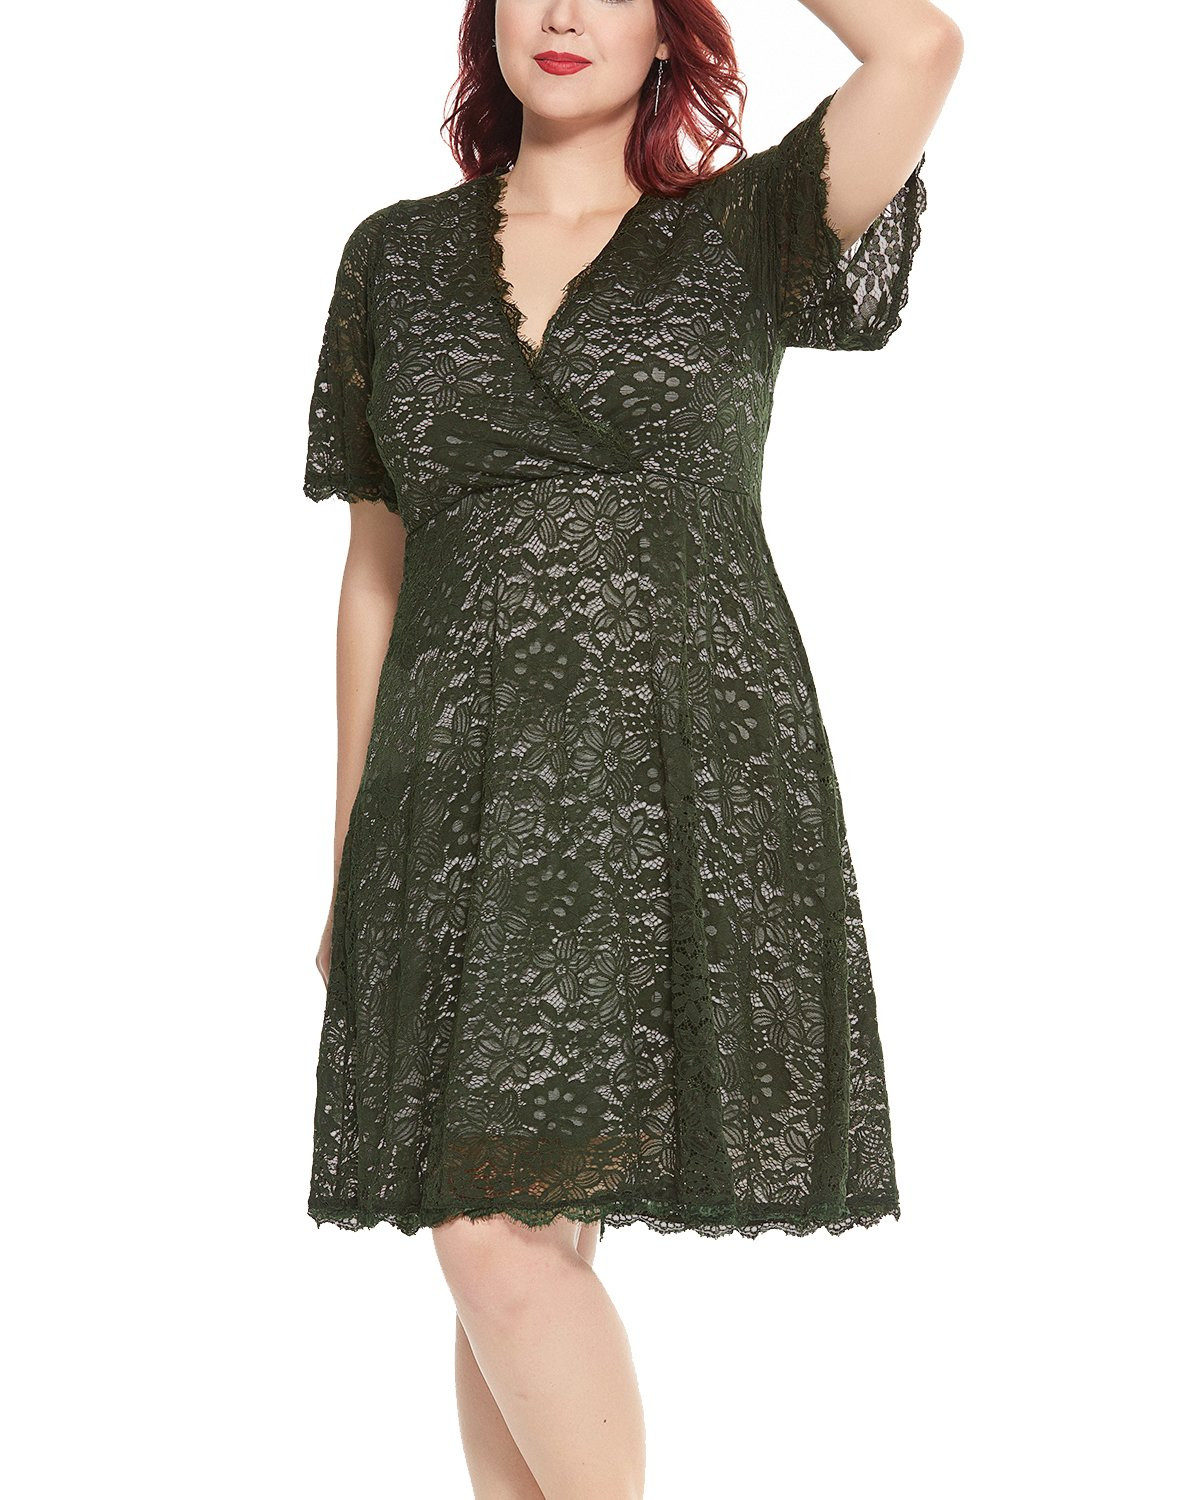 Women's Plus Size Flutter Sleeve V-Neckline Lace Flared Cocktail Party Dress Green 24W by Daci (Image #3)